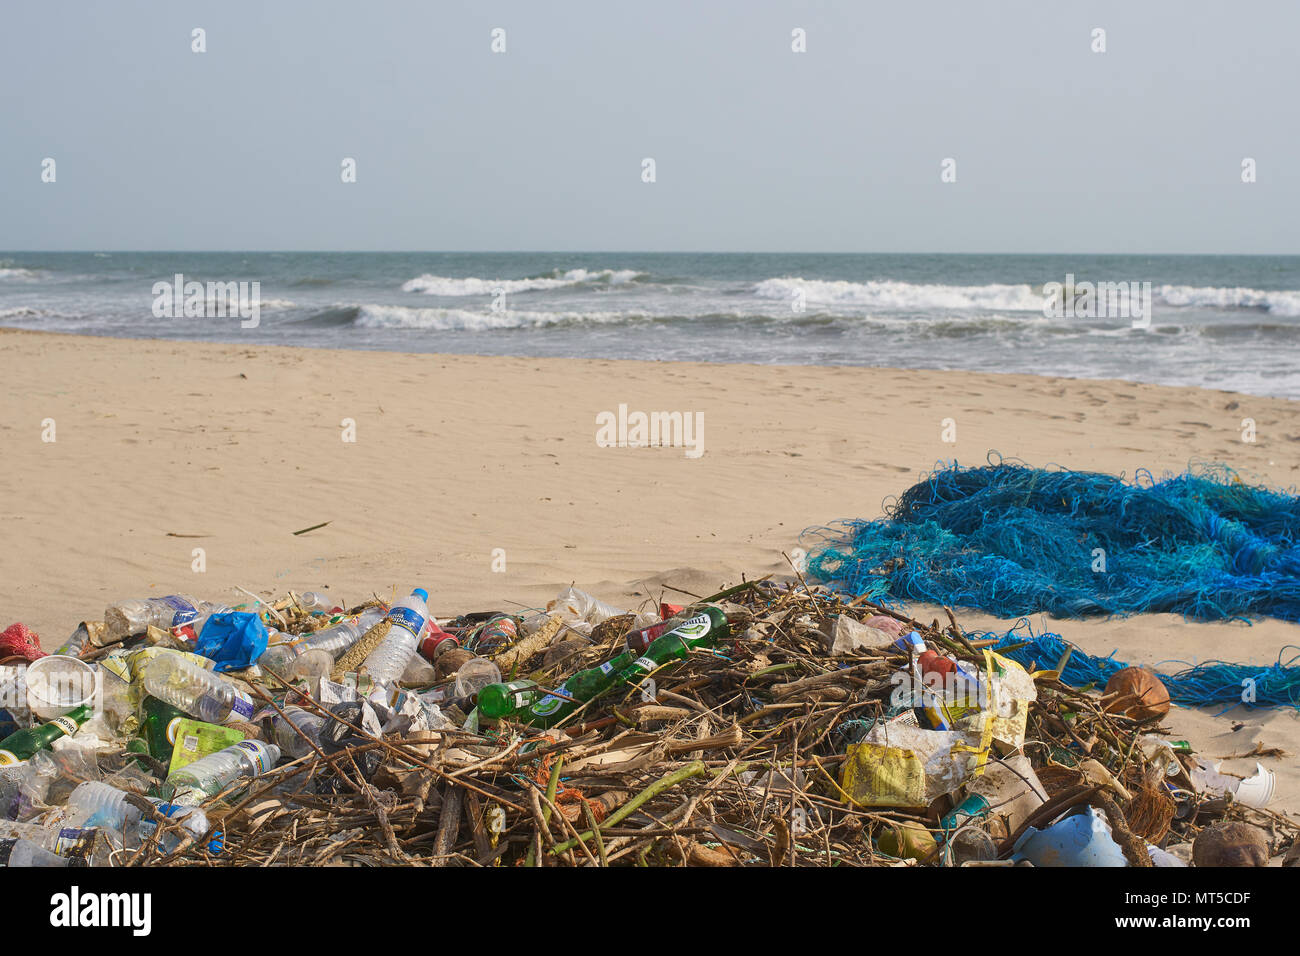 Garbage on the beach in Goa, India next to a fishing net. - Stock Image